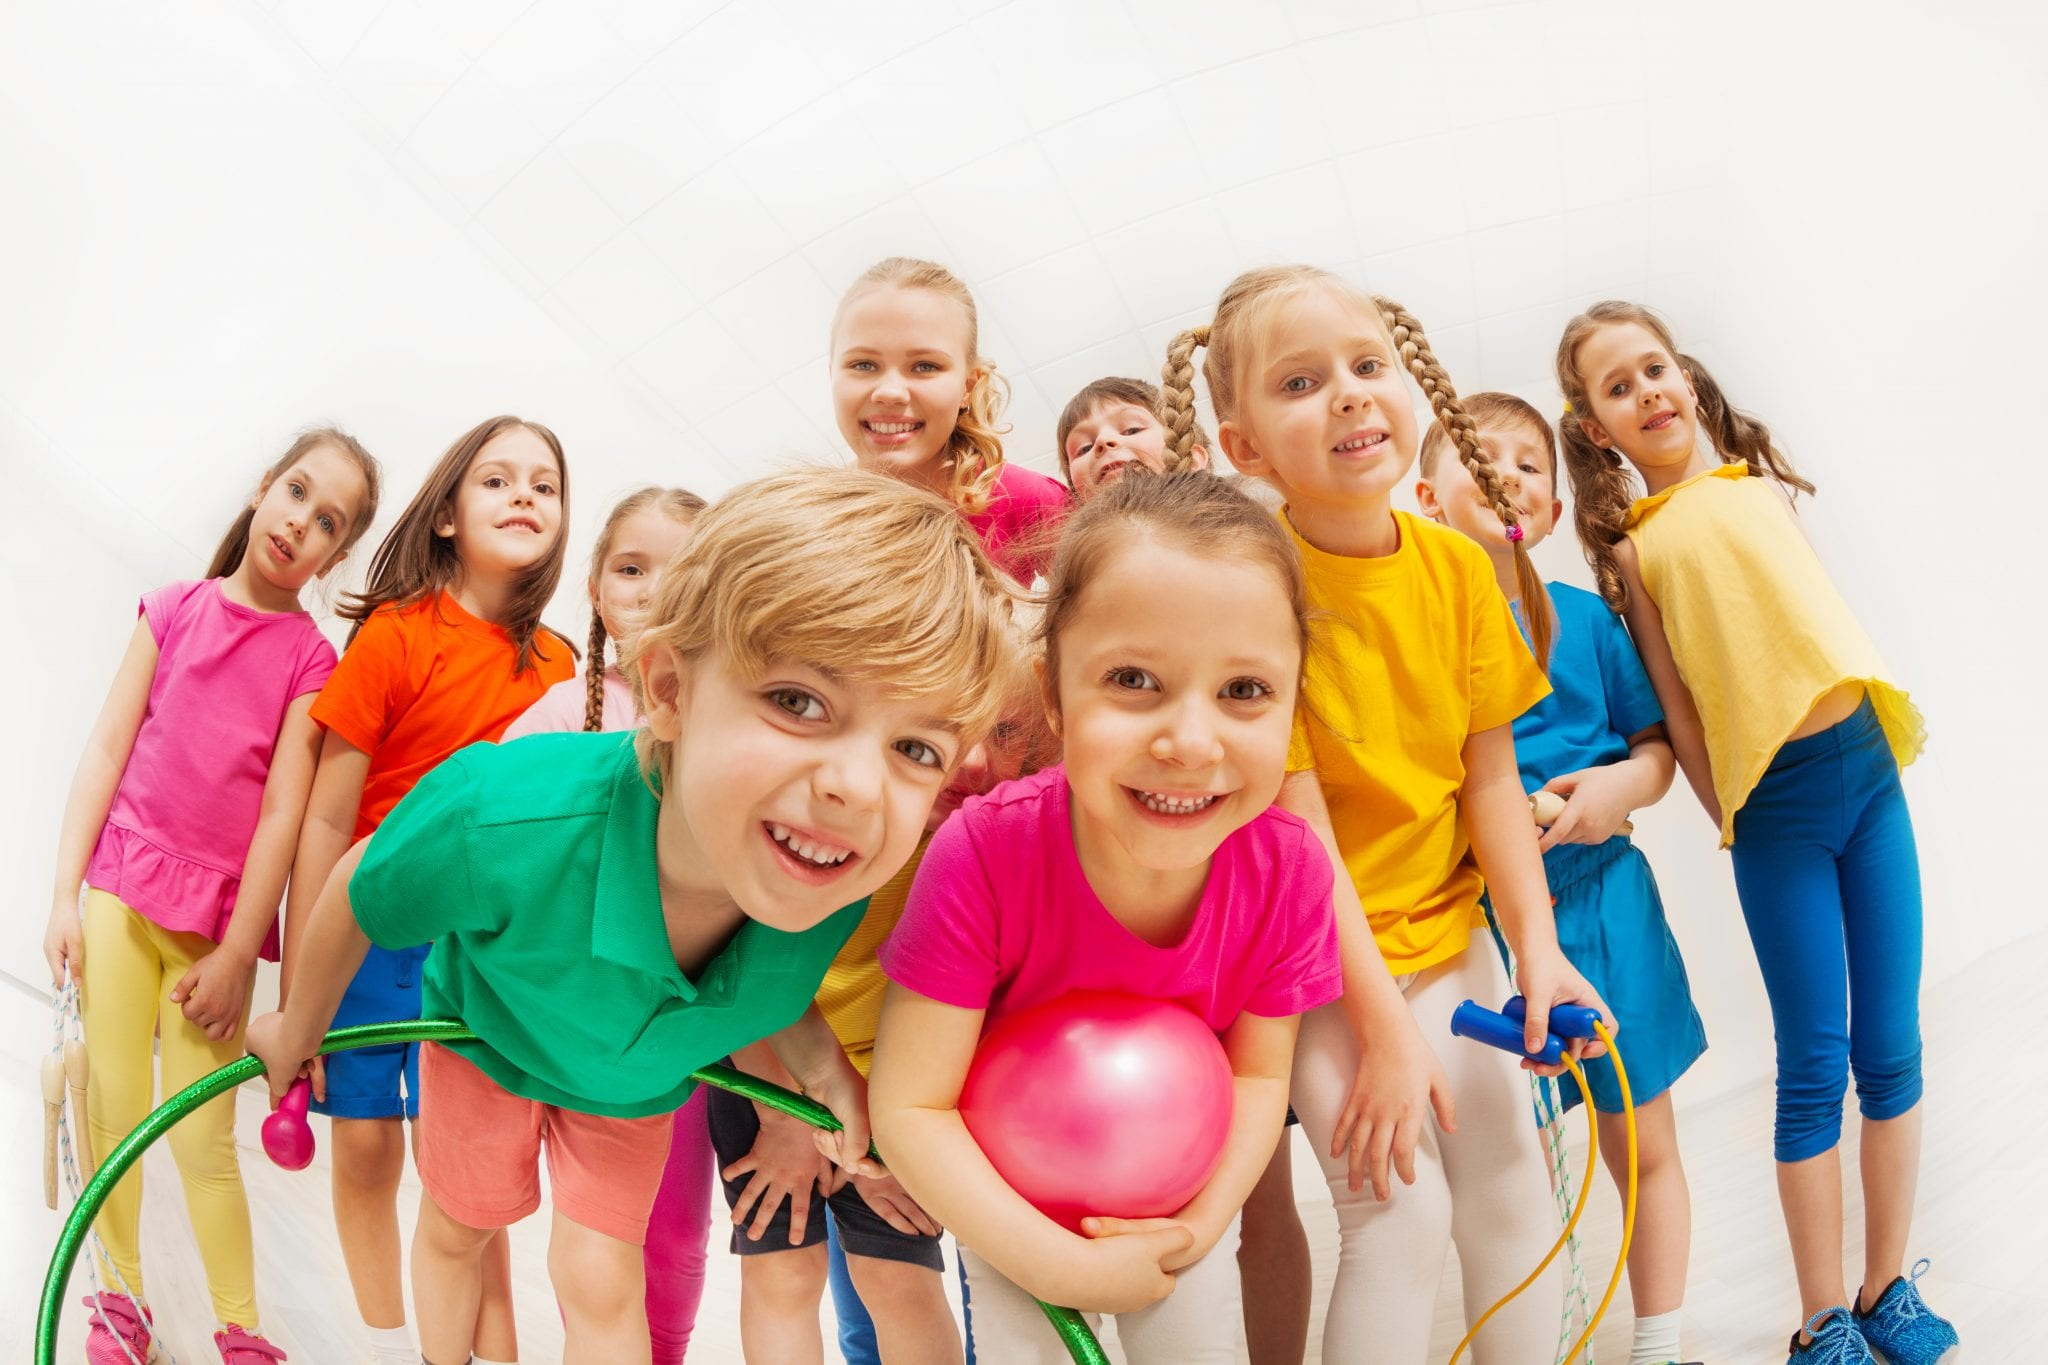 Let's turn the tide on children's fitness